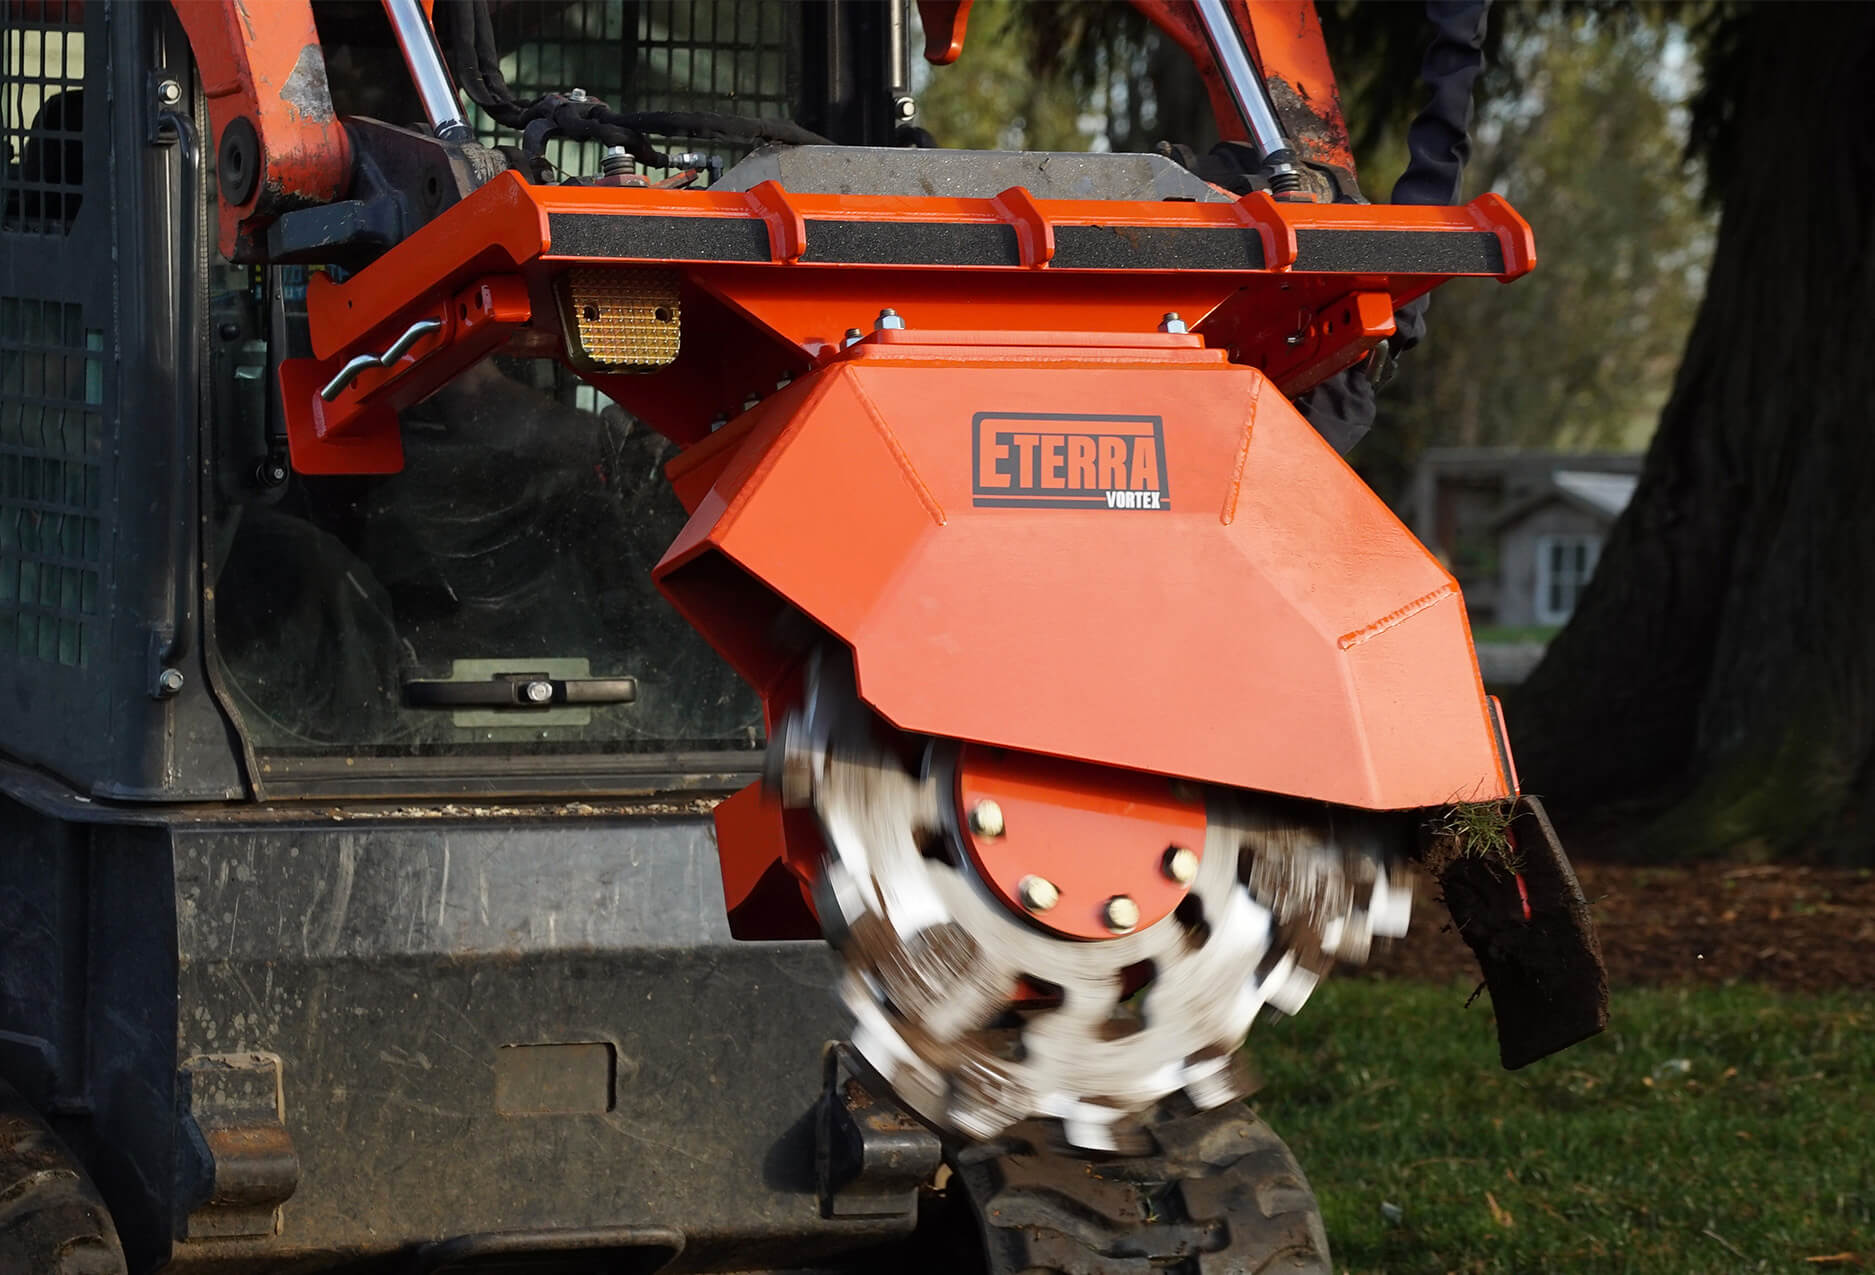 Eterra vortex skid steer stump grinder action